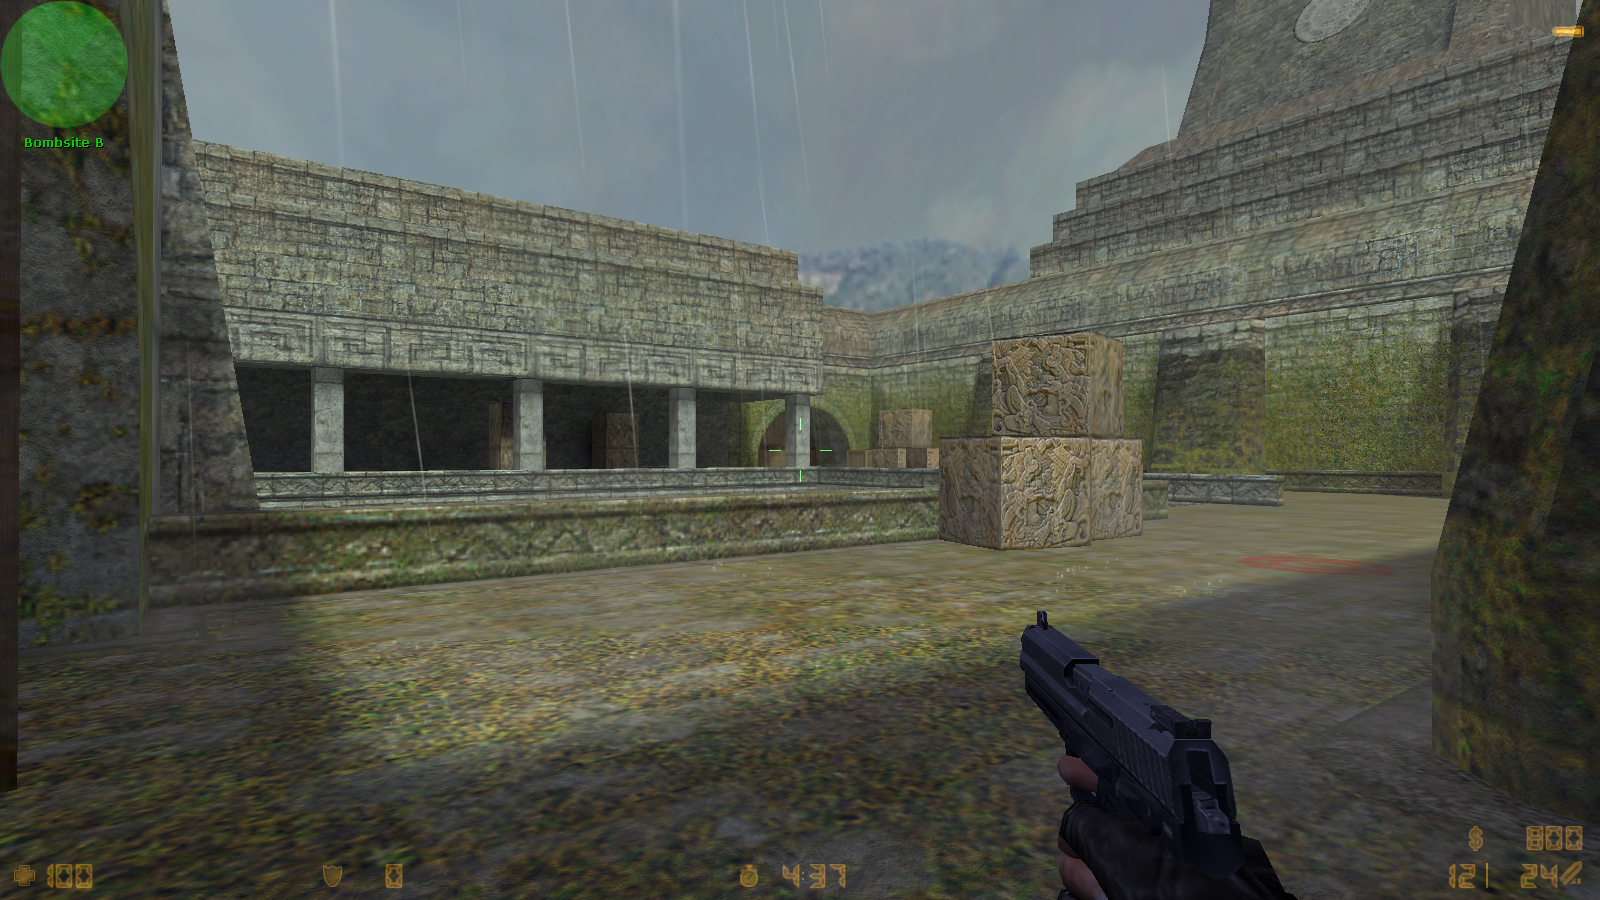 Image de aztec czg counter strike wiki fandom powered by wikia full resolution gumiabroncs Image collections